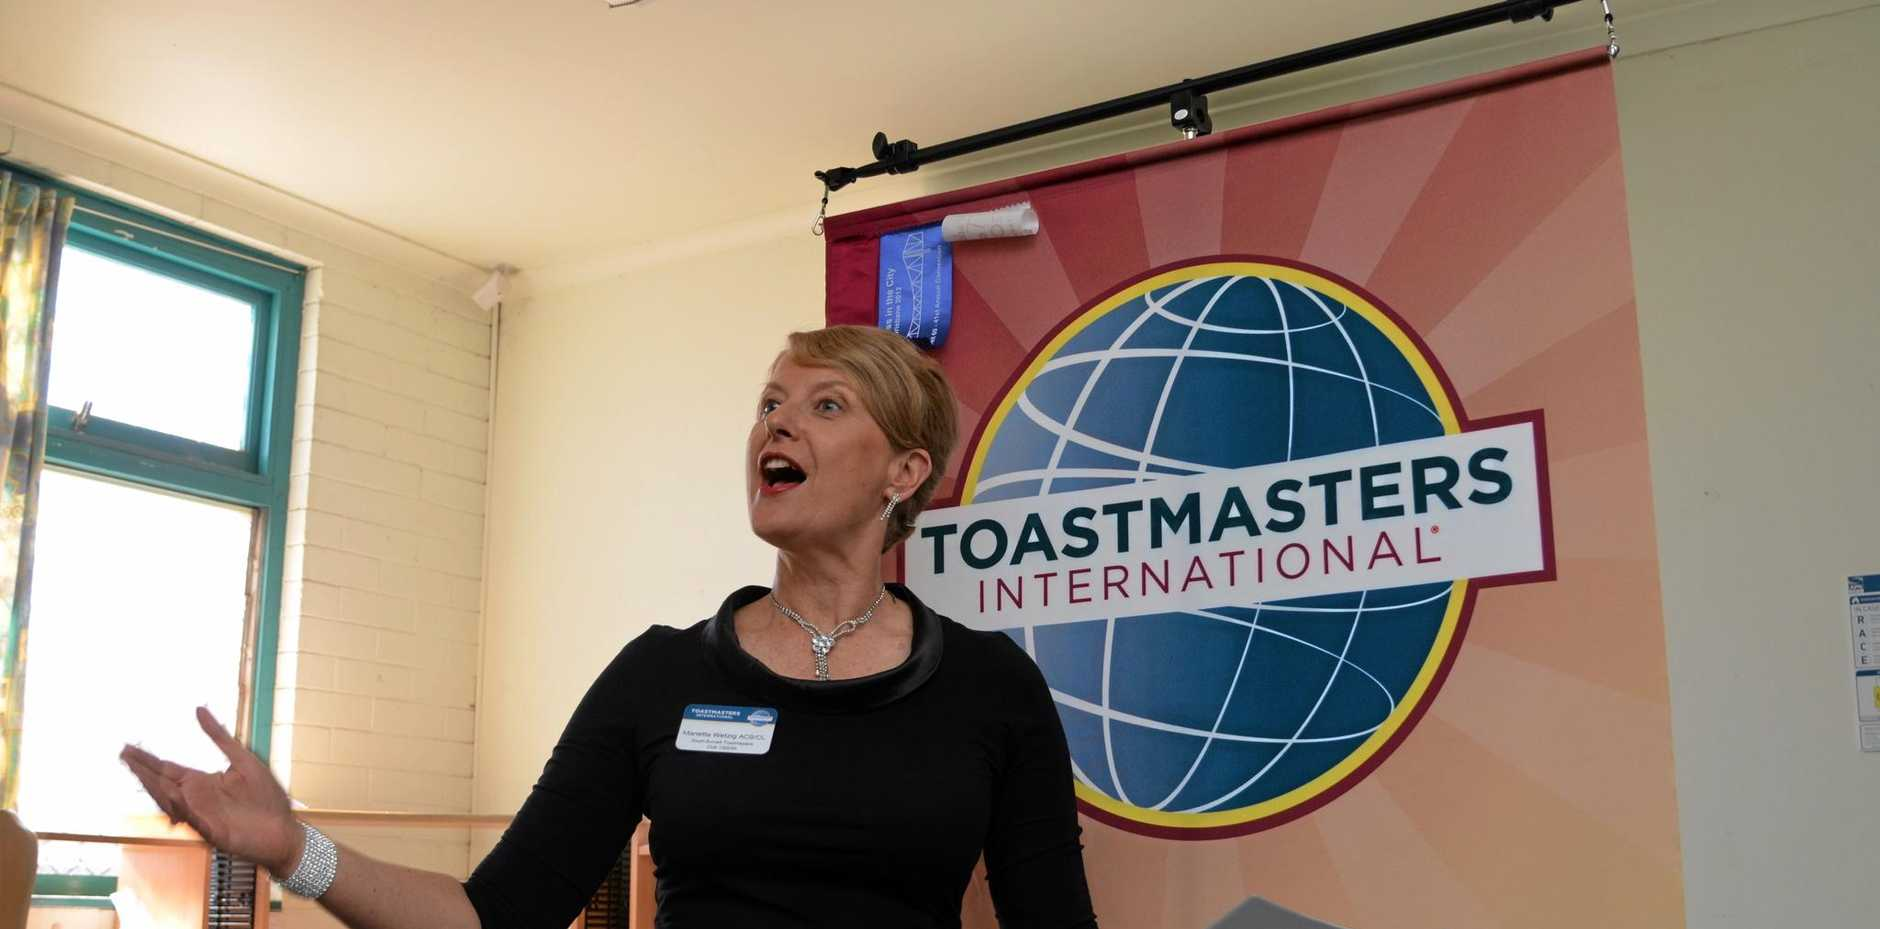 CONFIDENCE: Improve your public speaking skills with Toastmasters International.